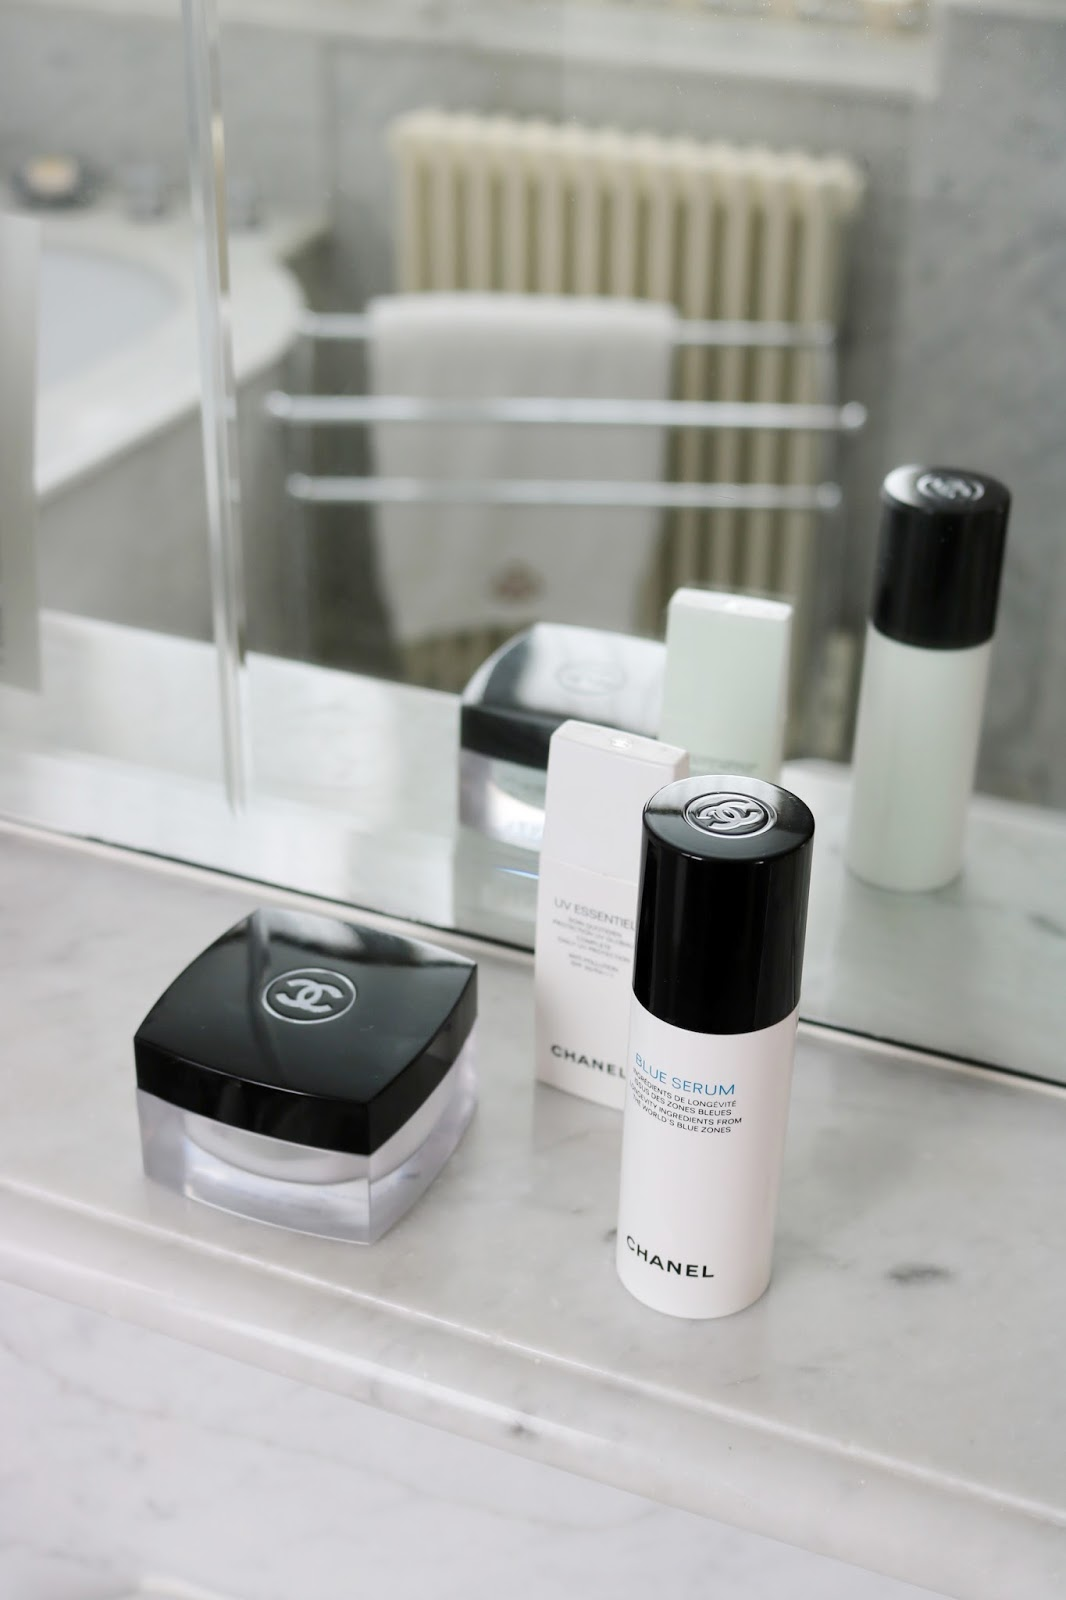 Chanel skincare products